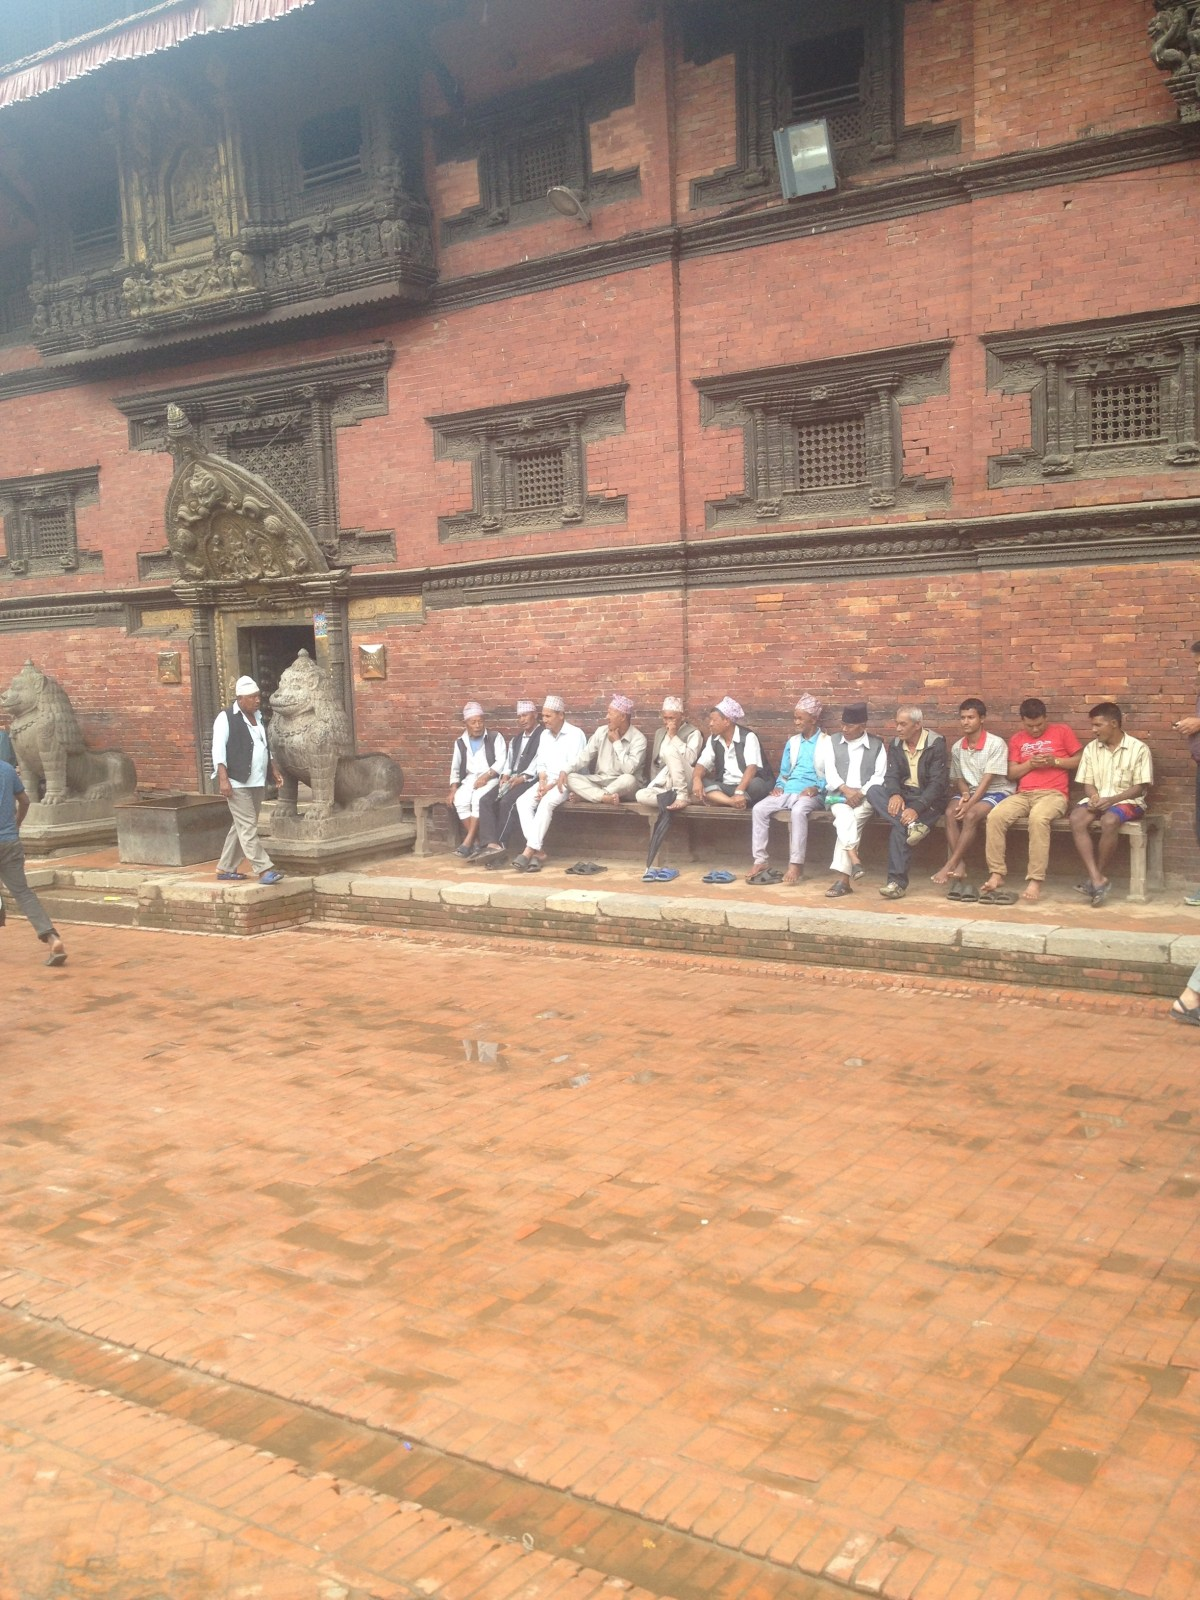 Nepal Travel: Straight Men Holding Hands in Kathmandu